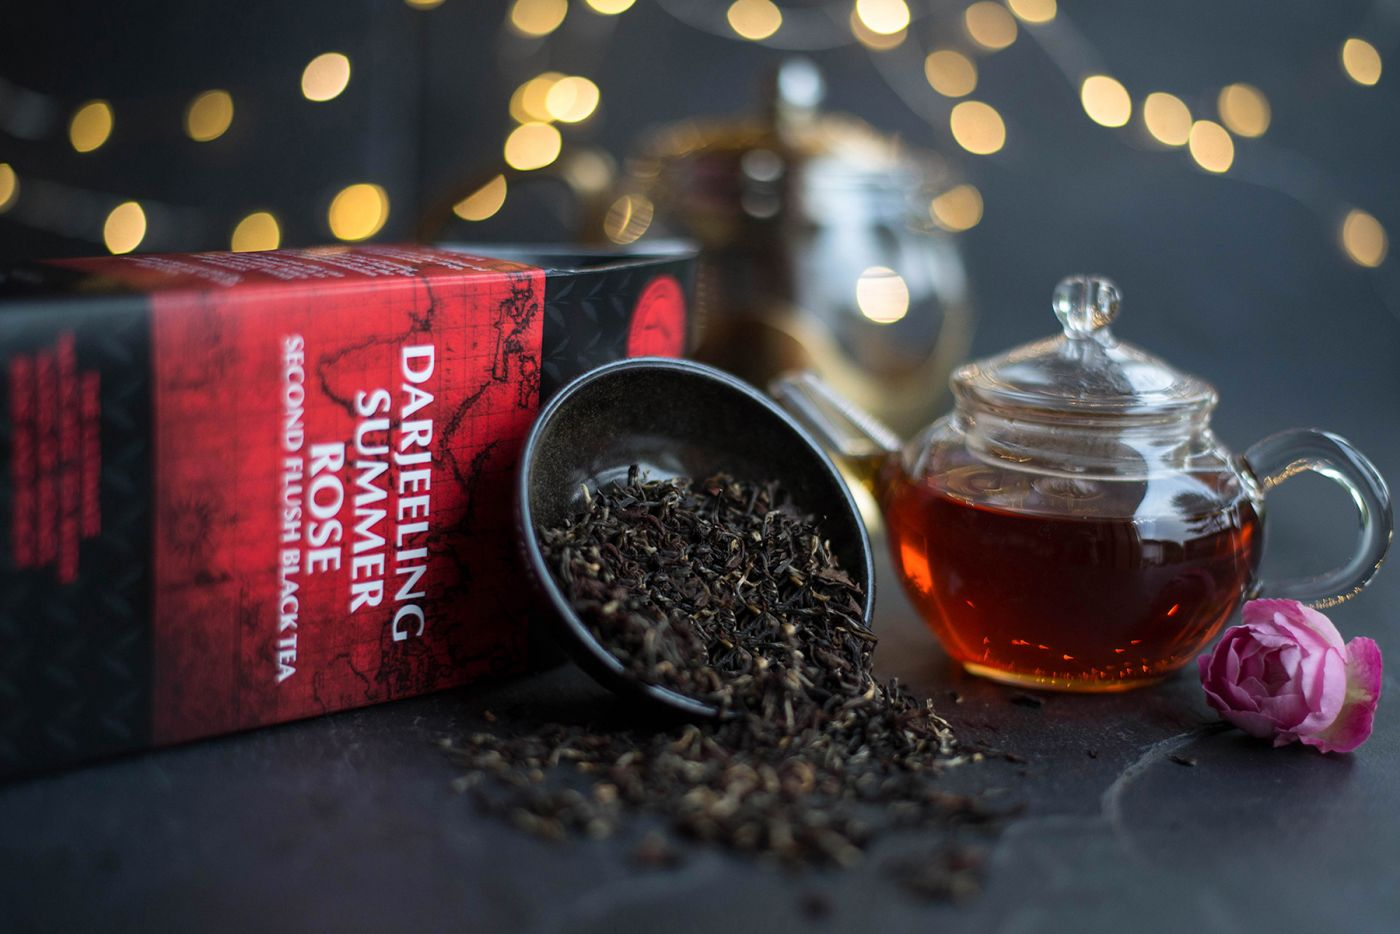 Darjeeling Summer Rose Second Flush Black Tea